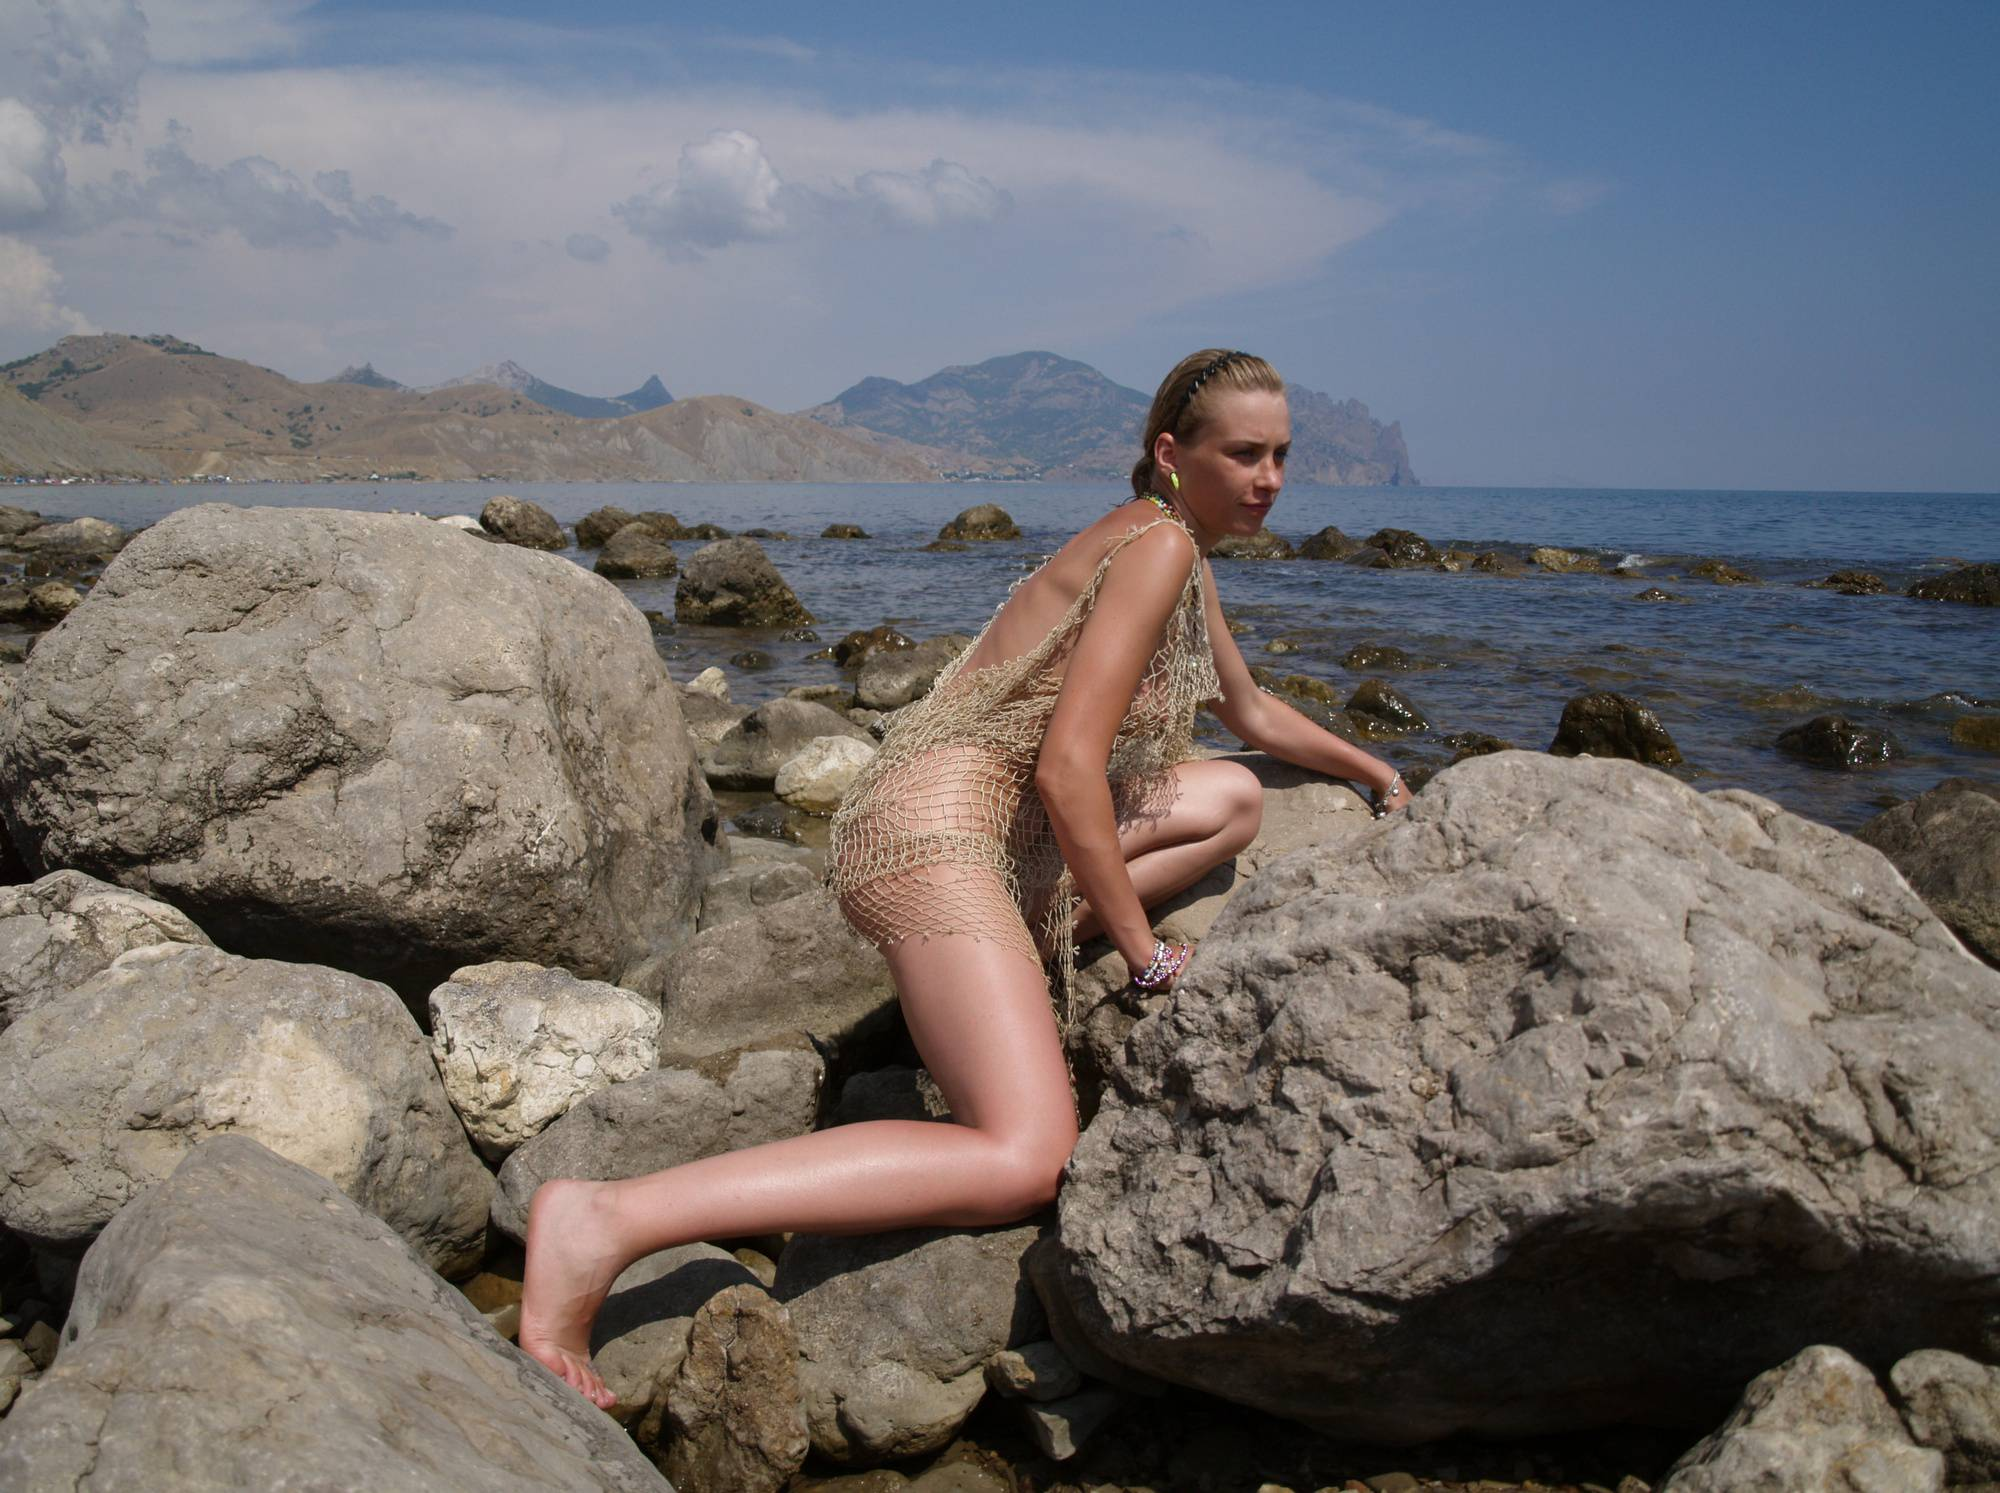 Nudist Pictures Naturist Model and Daughter - 2